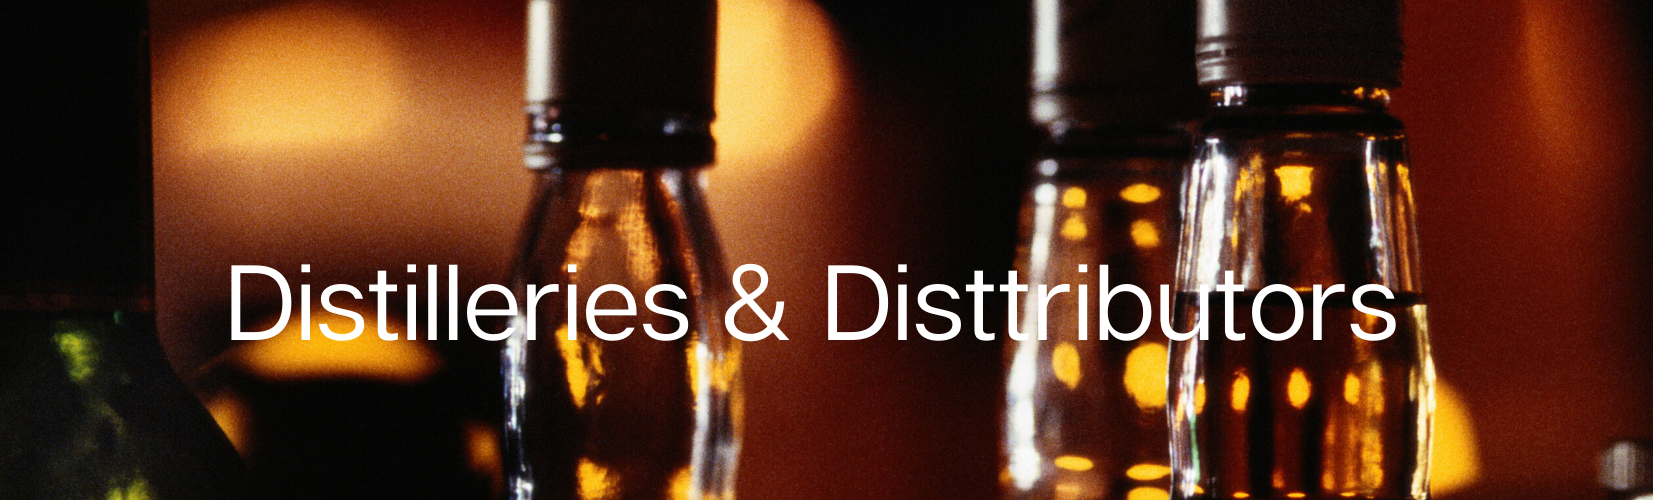 Relationships between Distillers and Distributors